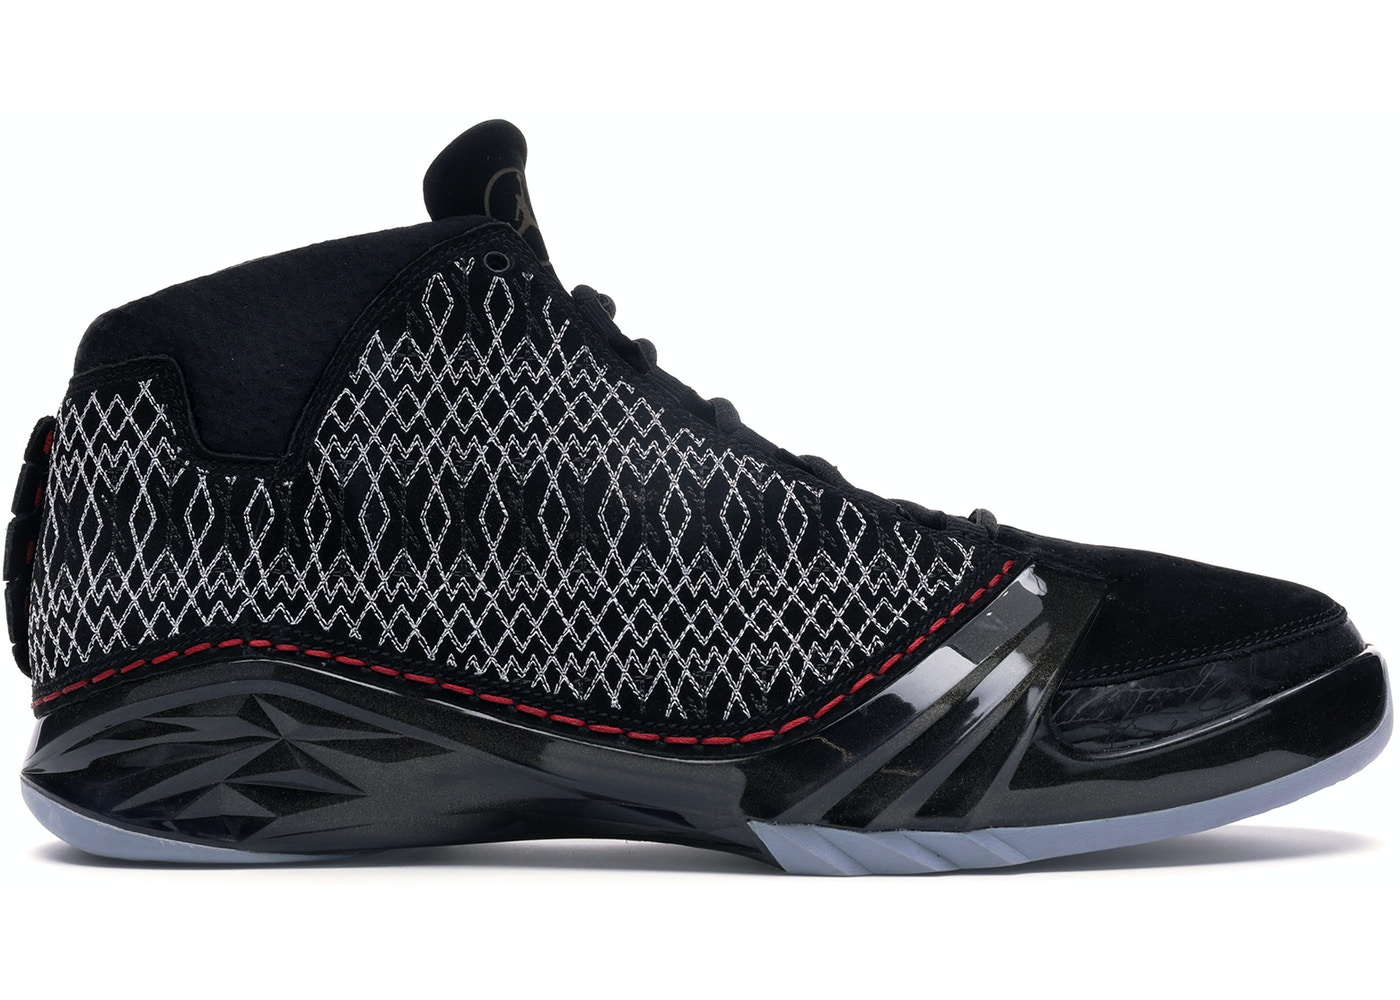 quality design 02472 abfc7 Buy Air Jordan 23 Shoes   Deadstock Sneakers